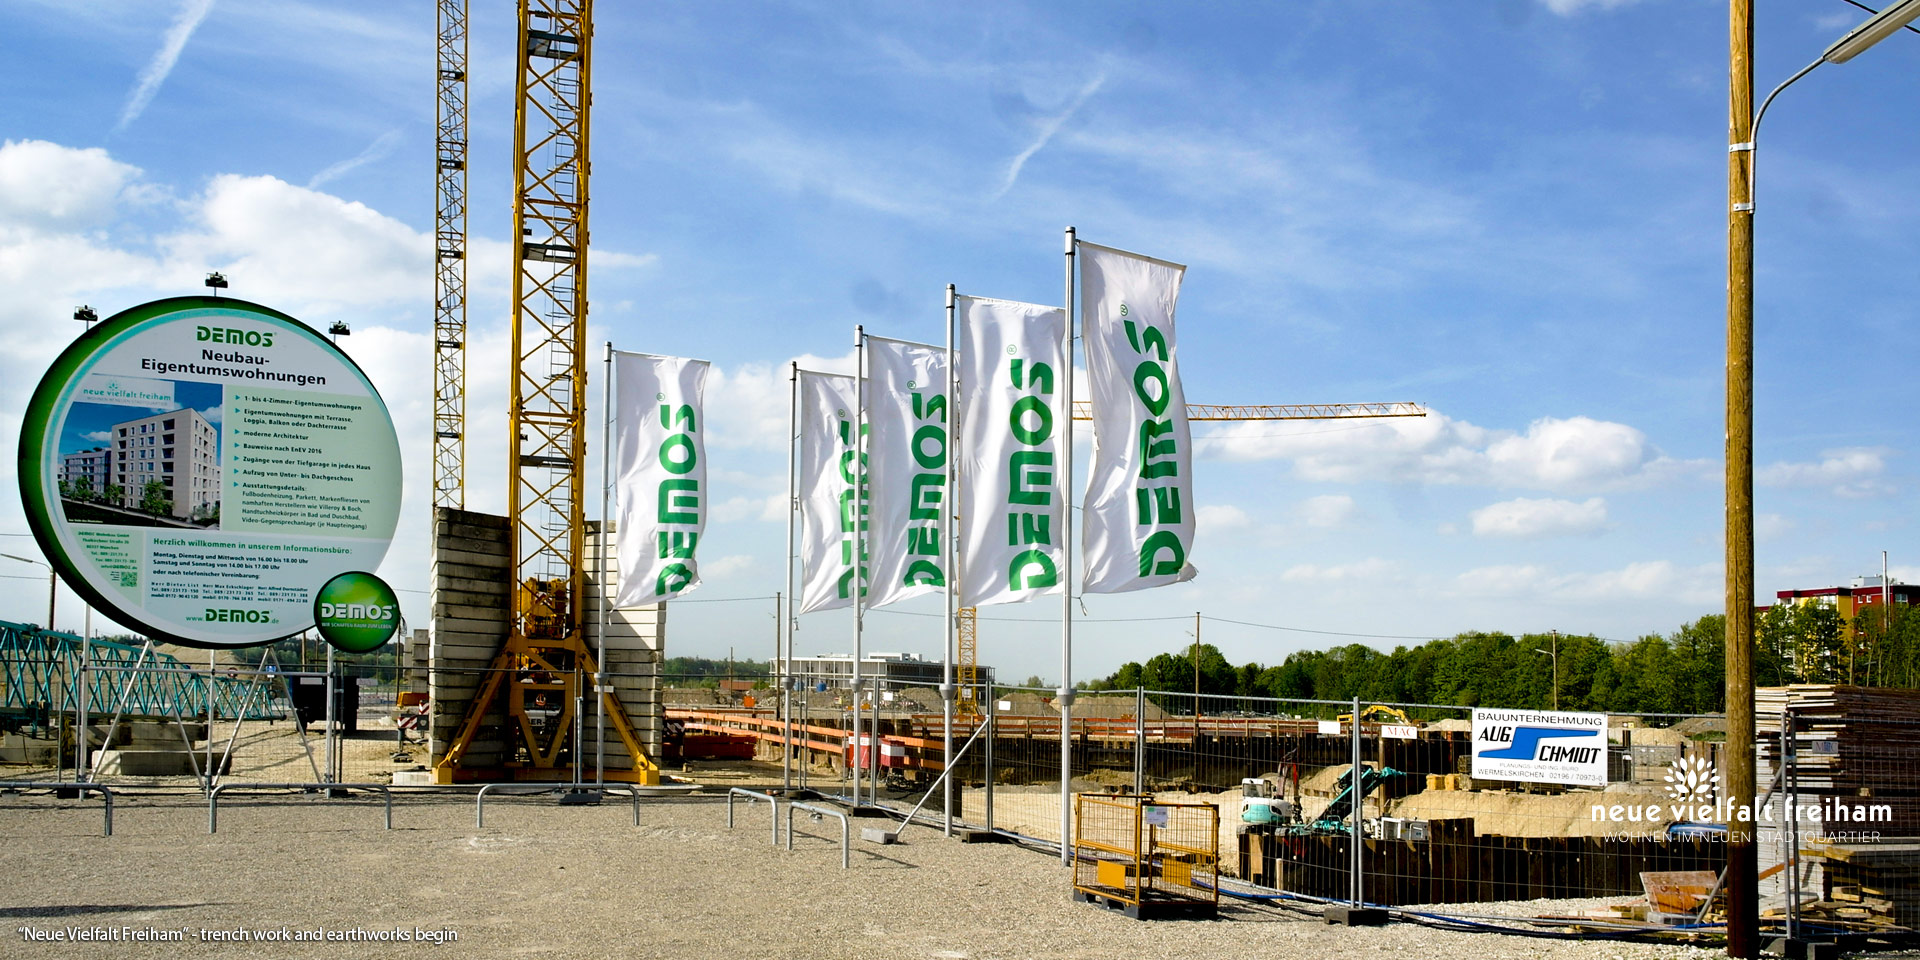 'Neue Vielfalt Freiham' in Munich-Freiham: Now the trench work and earthworks begin